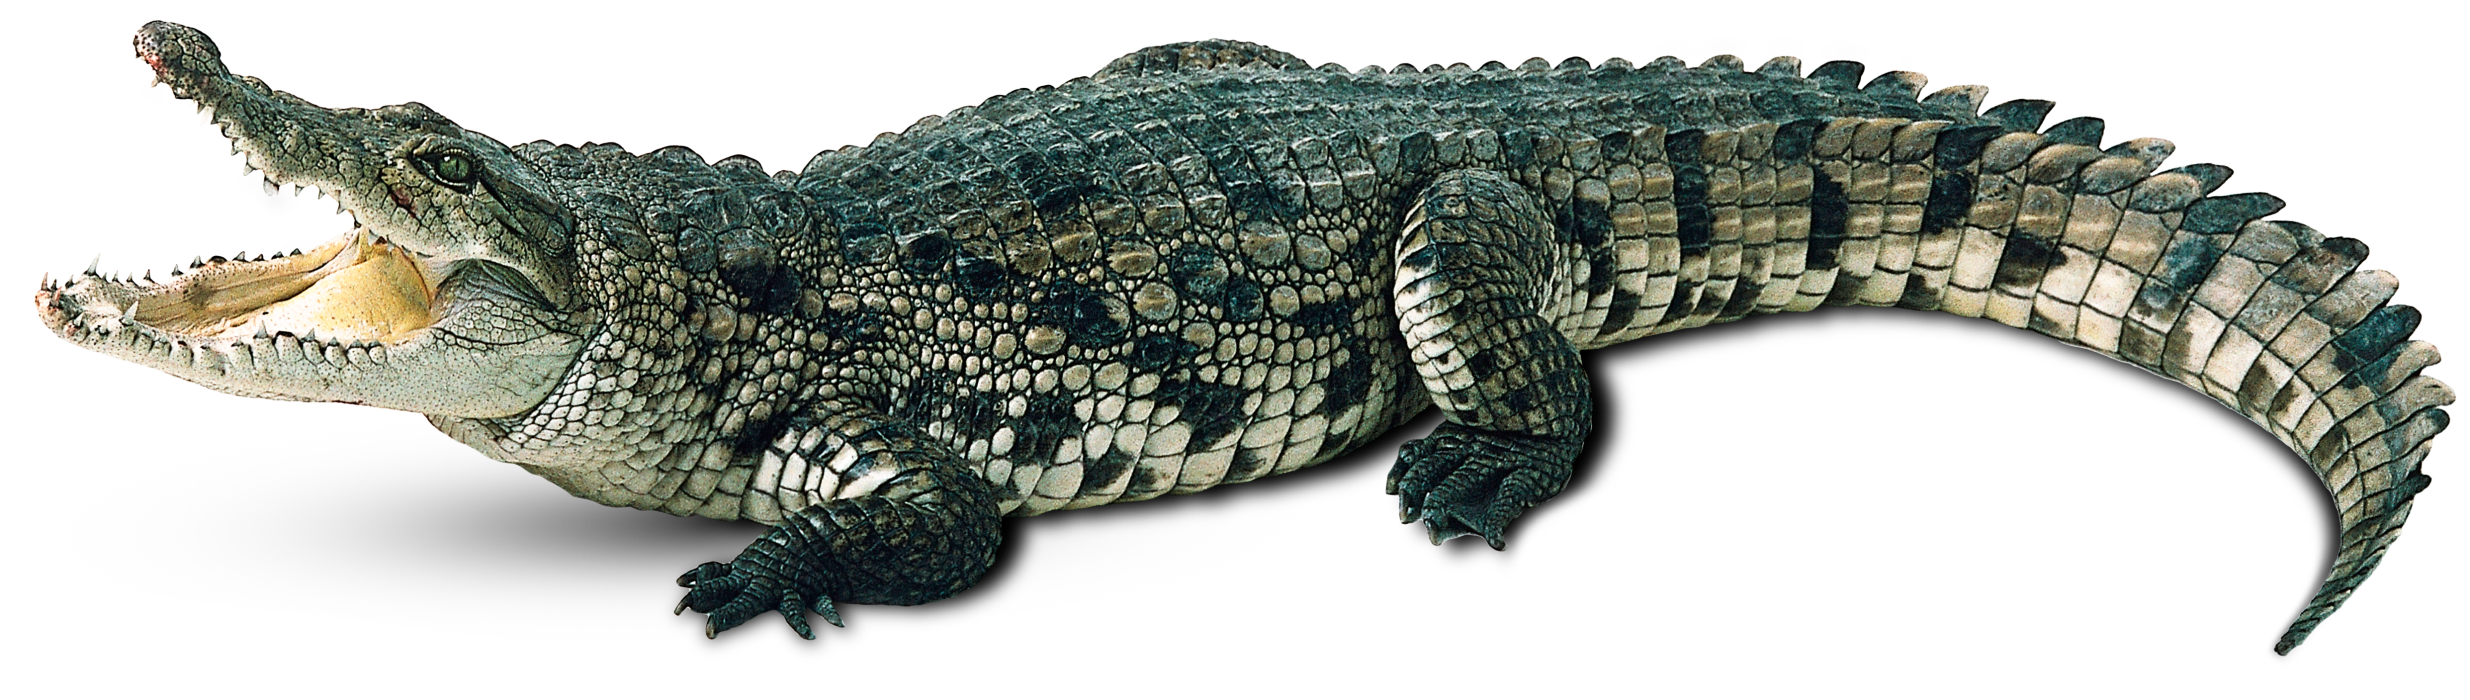 Crocodile PNG Picture image #37511